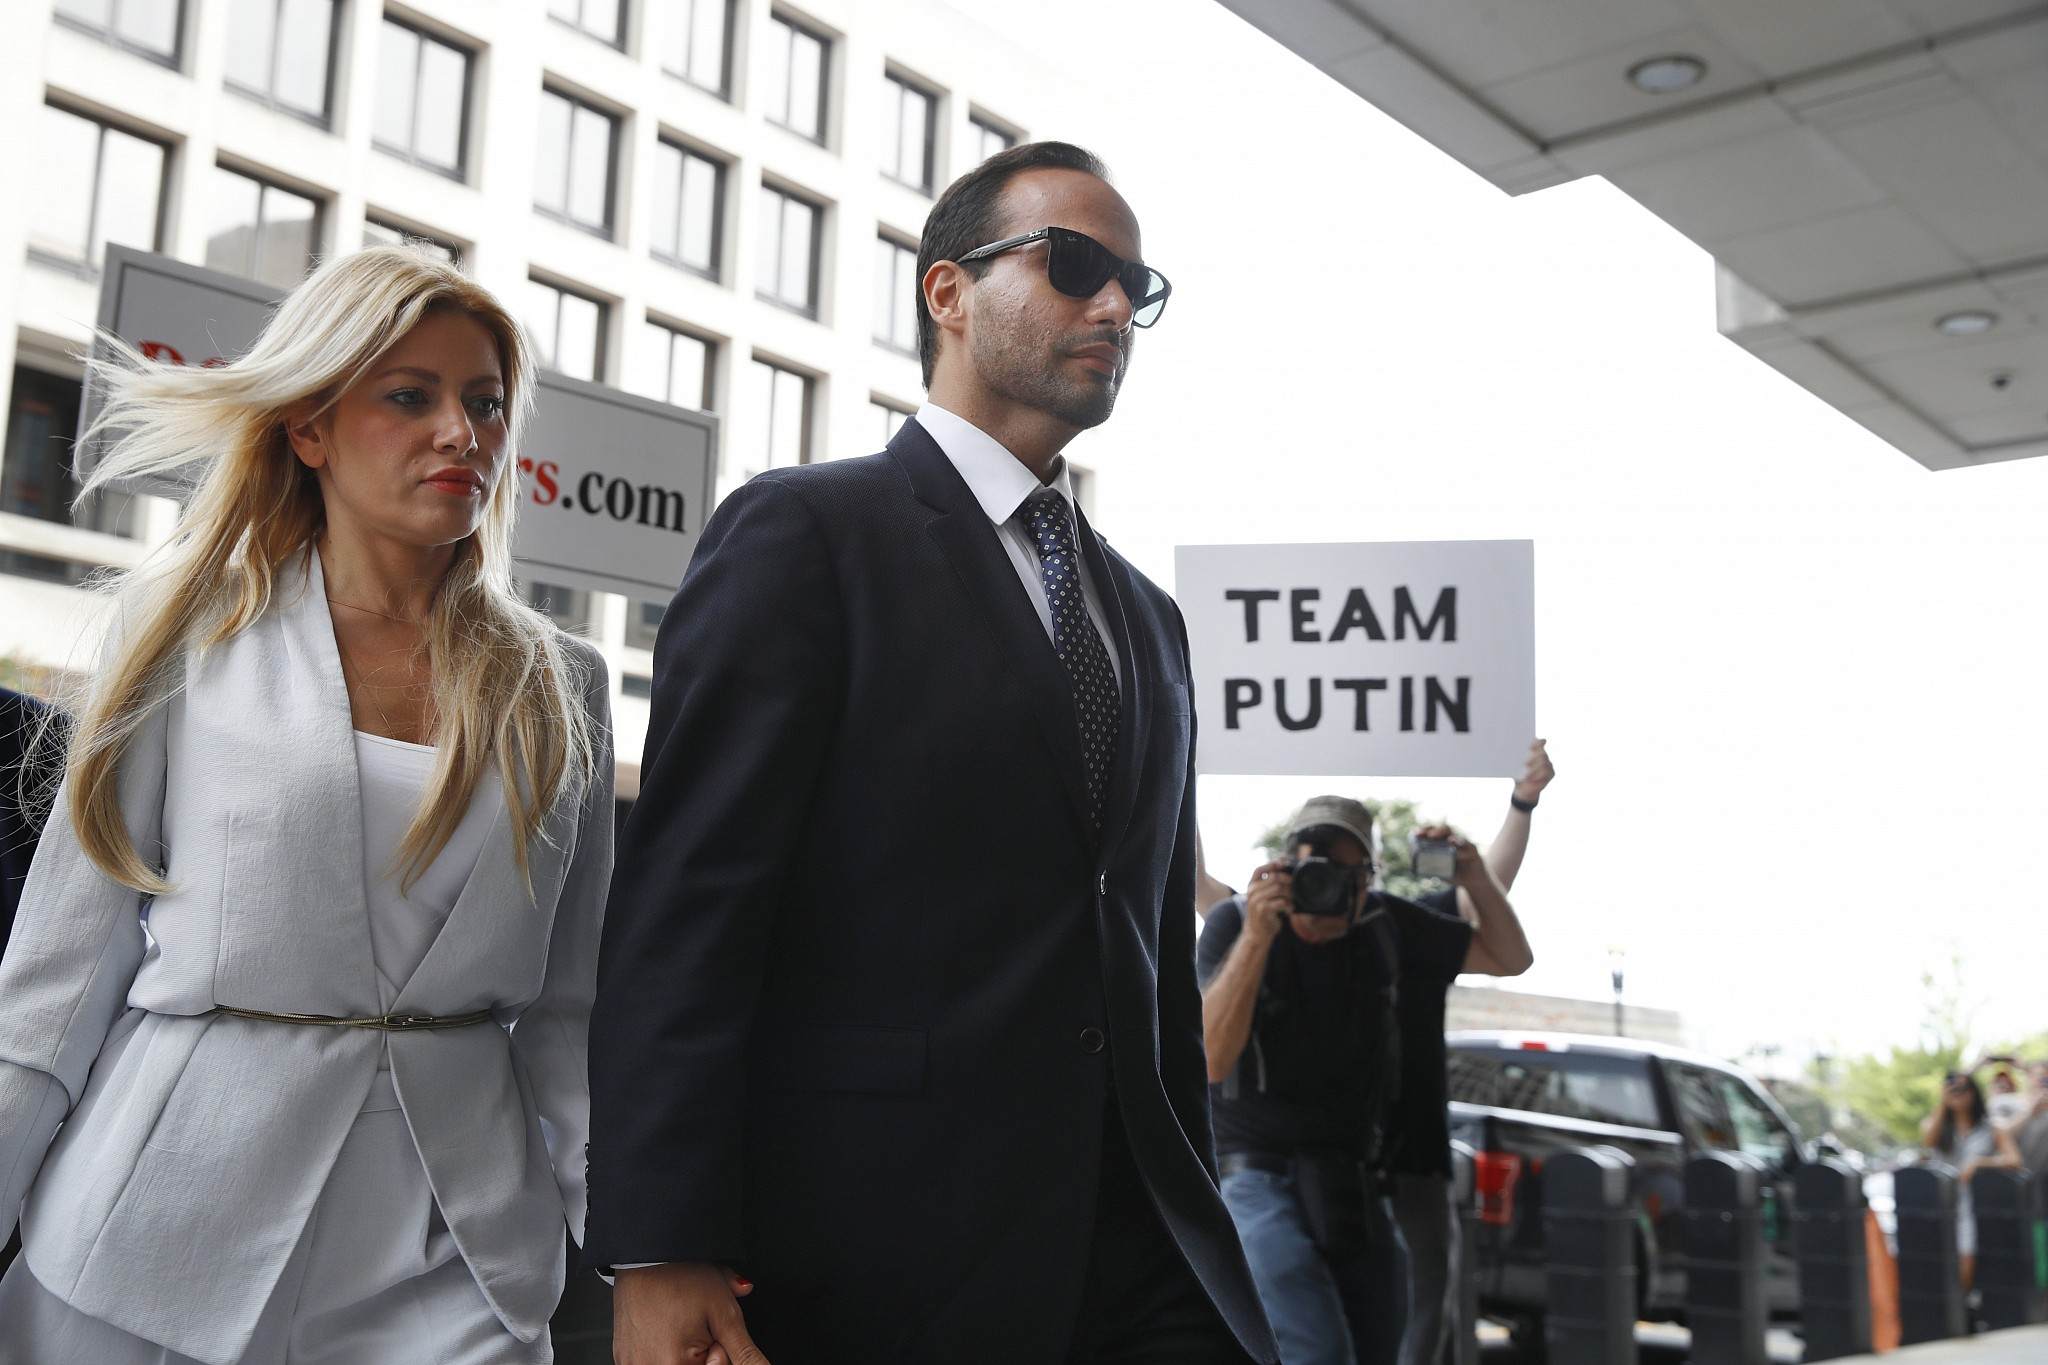 Trump's former adviser George Papadopoulos handed 14-day jail term